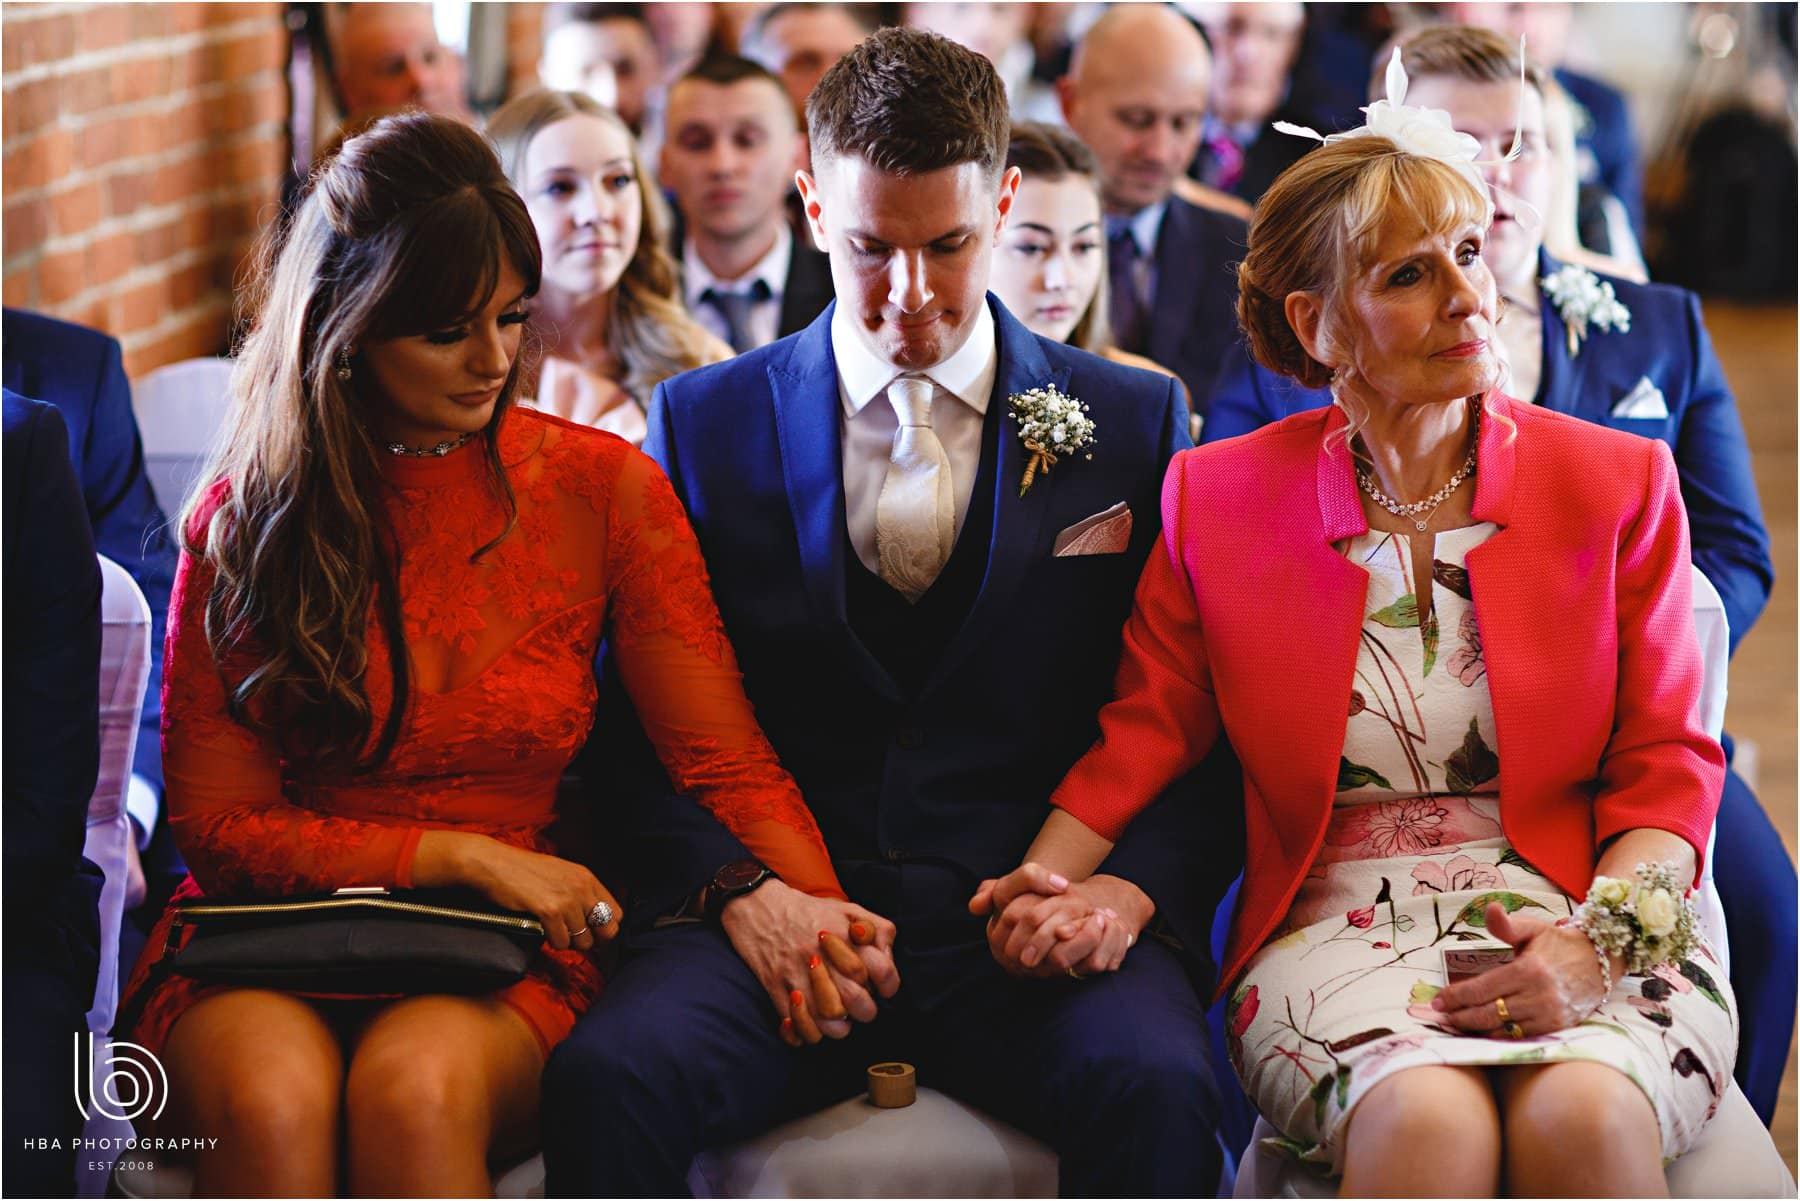 the family holding hands during the ceremony